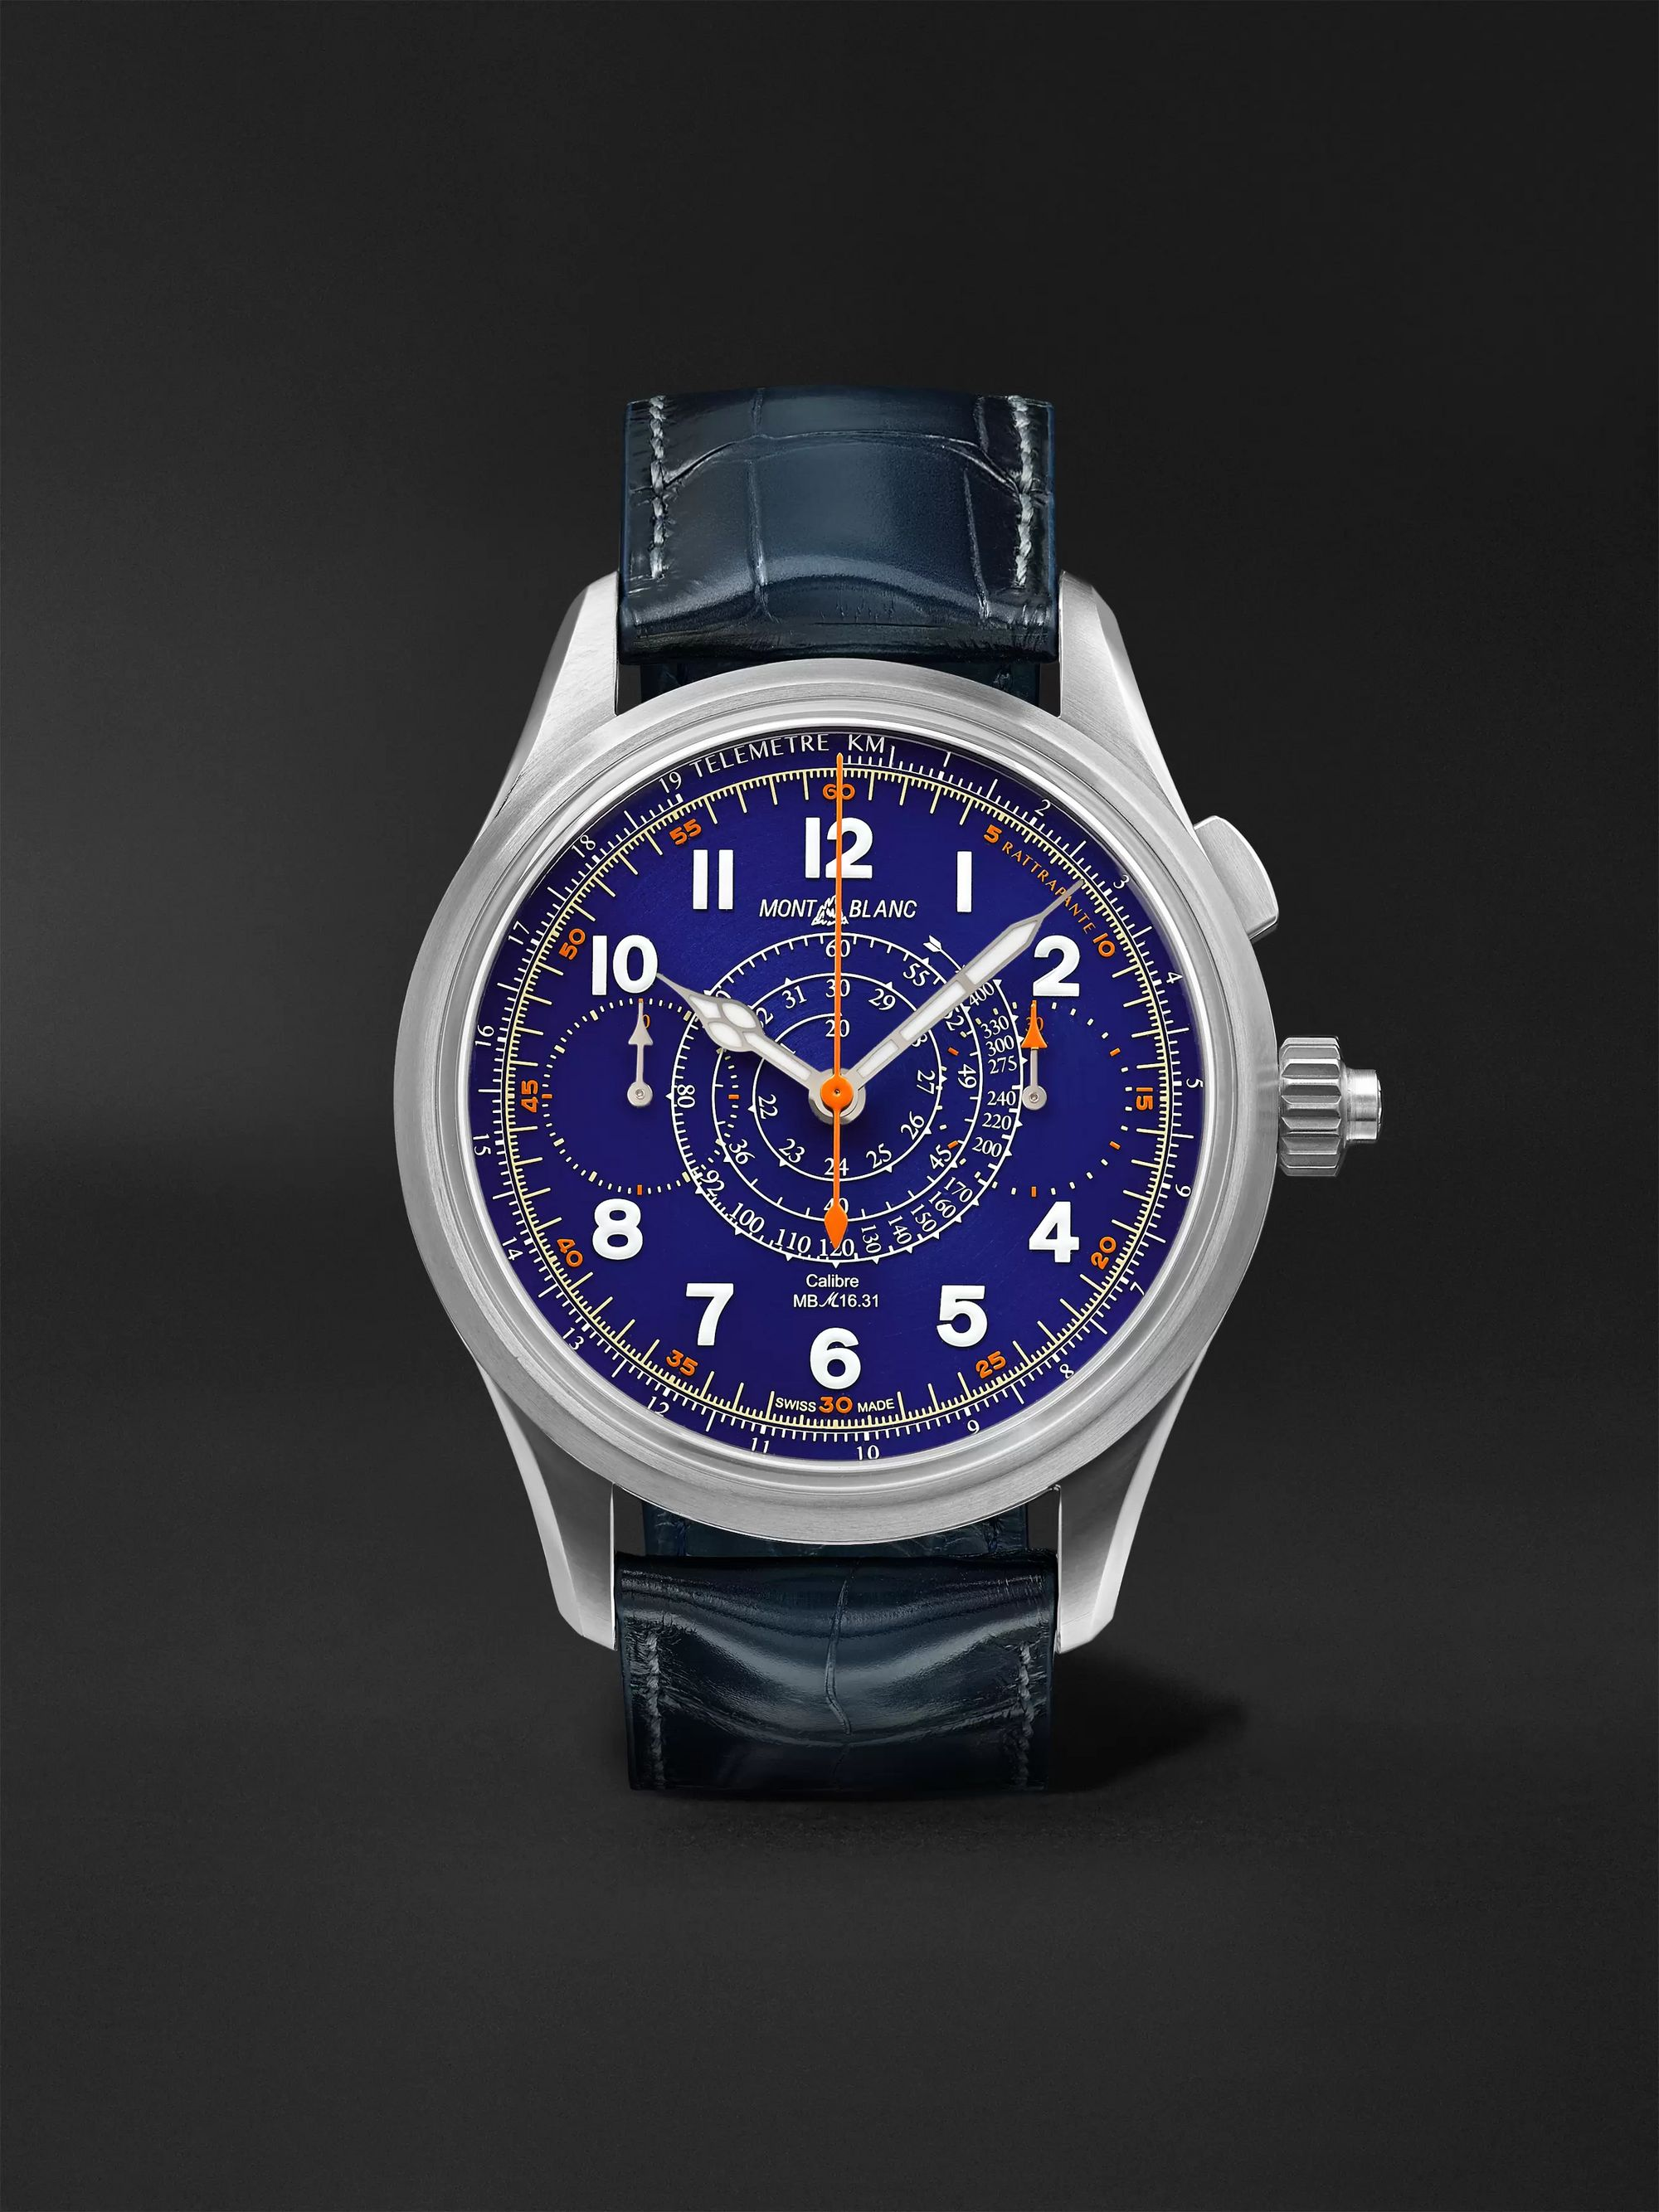 MONTBLANC 1858 Limited Edition Hand-Wound Split Second Chronograph 44mm Titanium and Alligator Watch, Ref. No. 126006